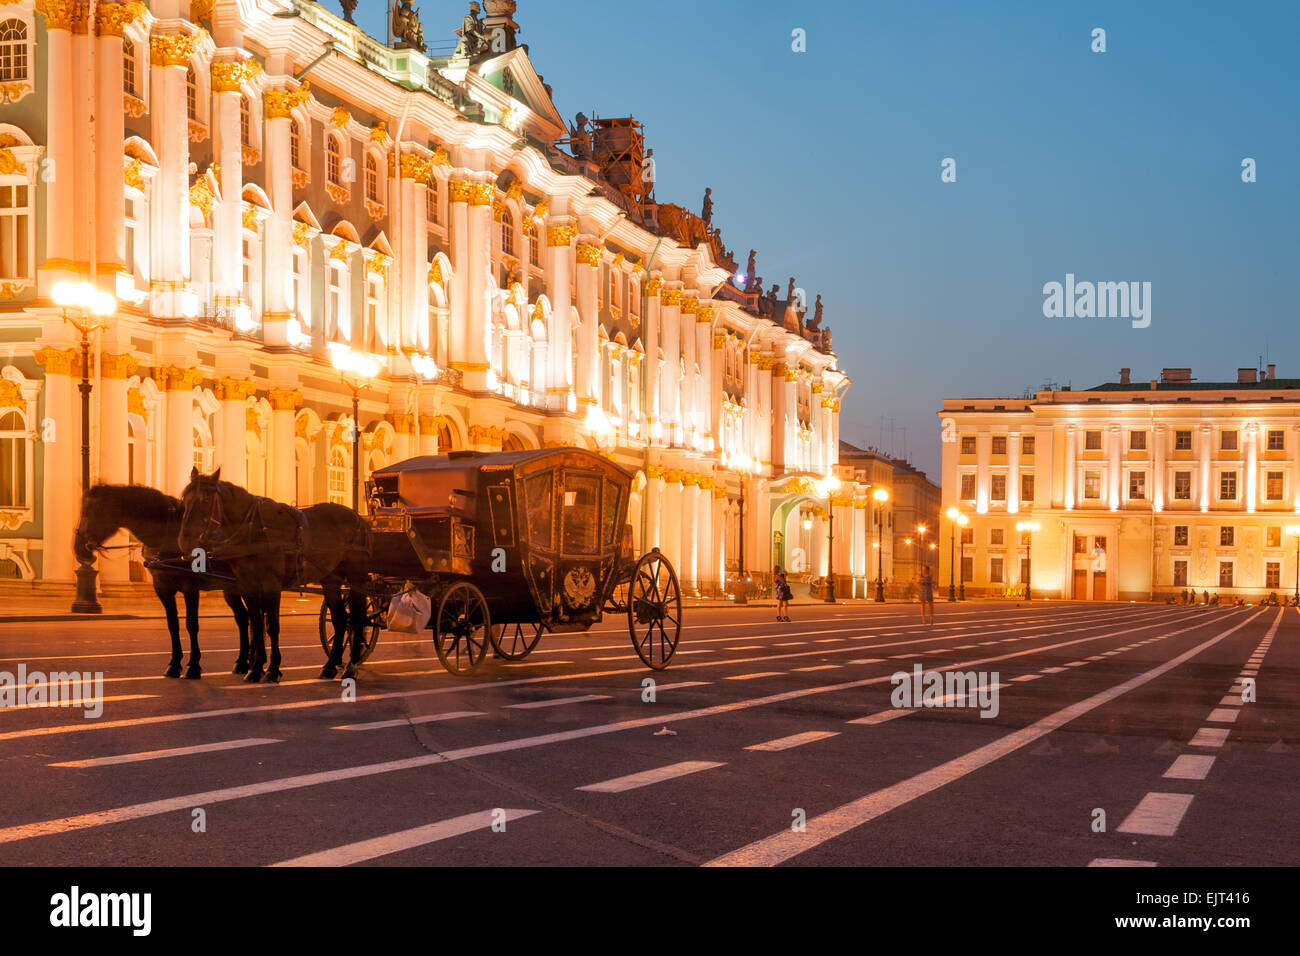 Horse-drawn carriage by the Winter palace on Palace square, Saint Petersburg, Russia - Stock Image